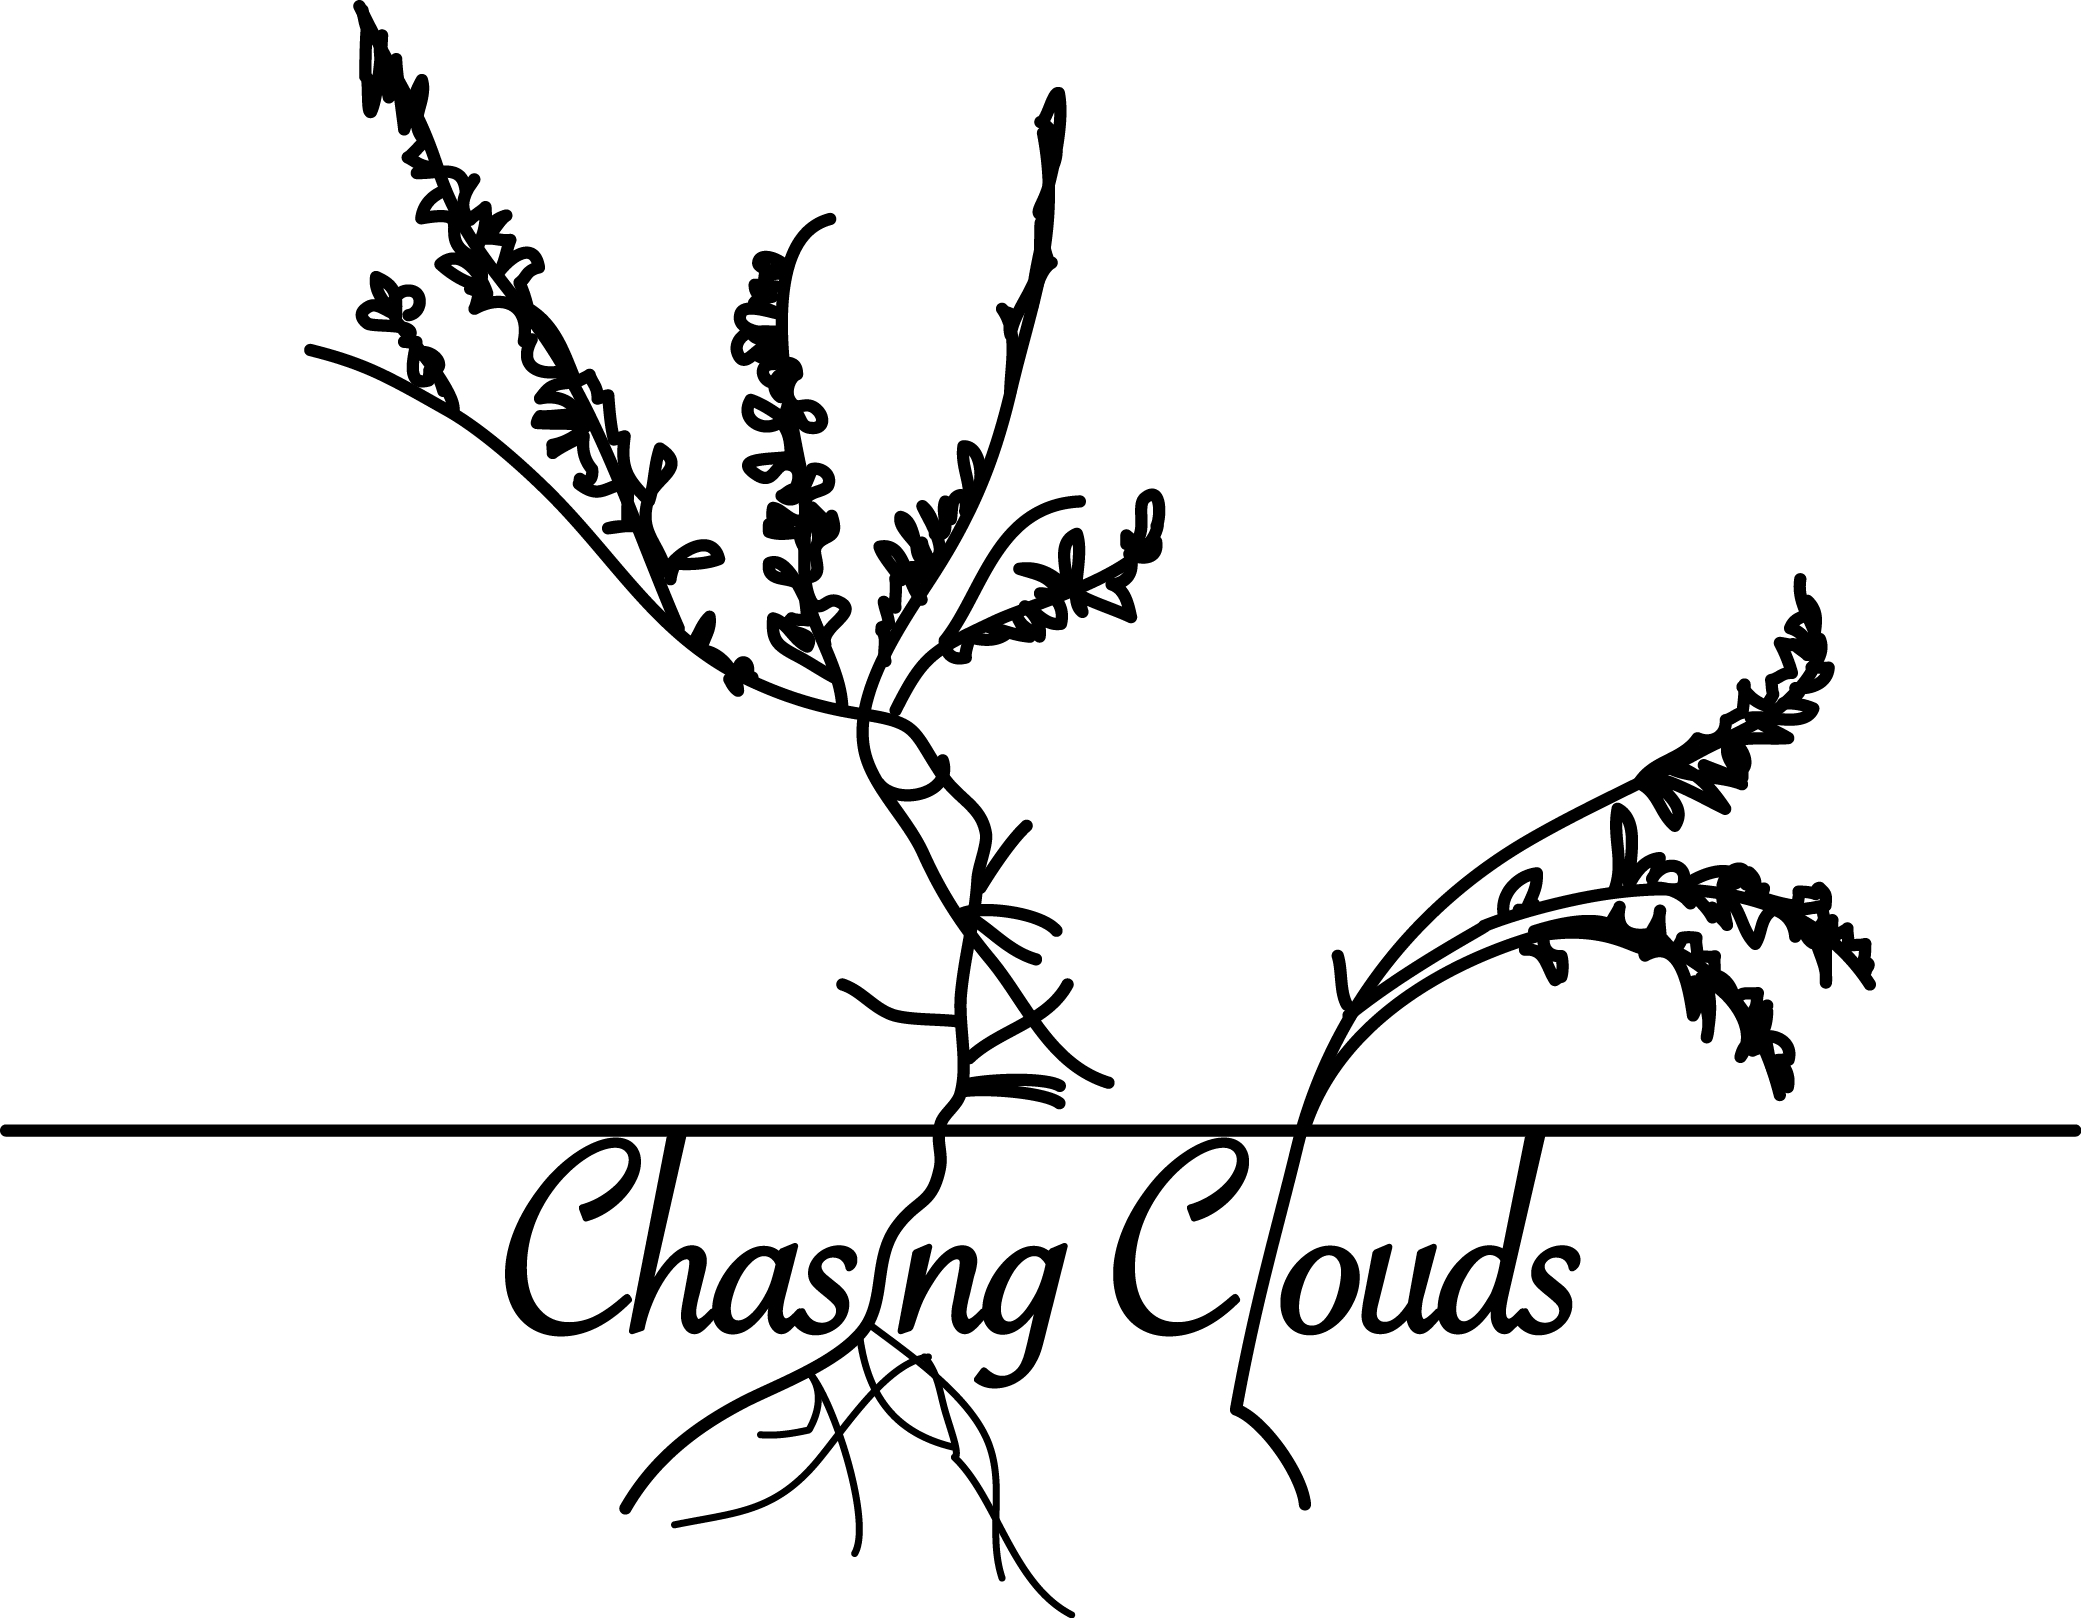 chasing clouds final.png